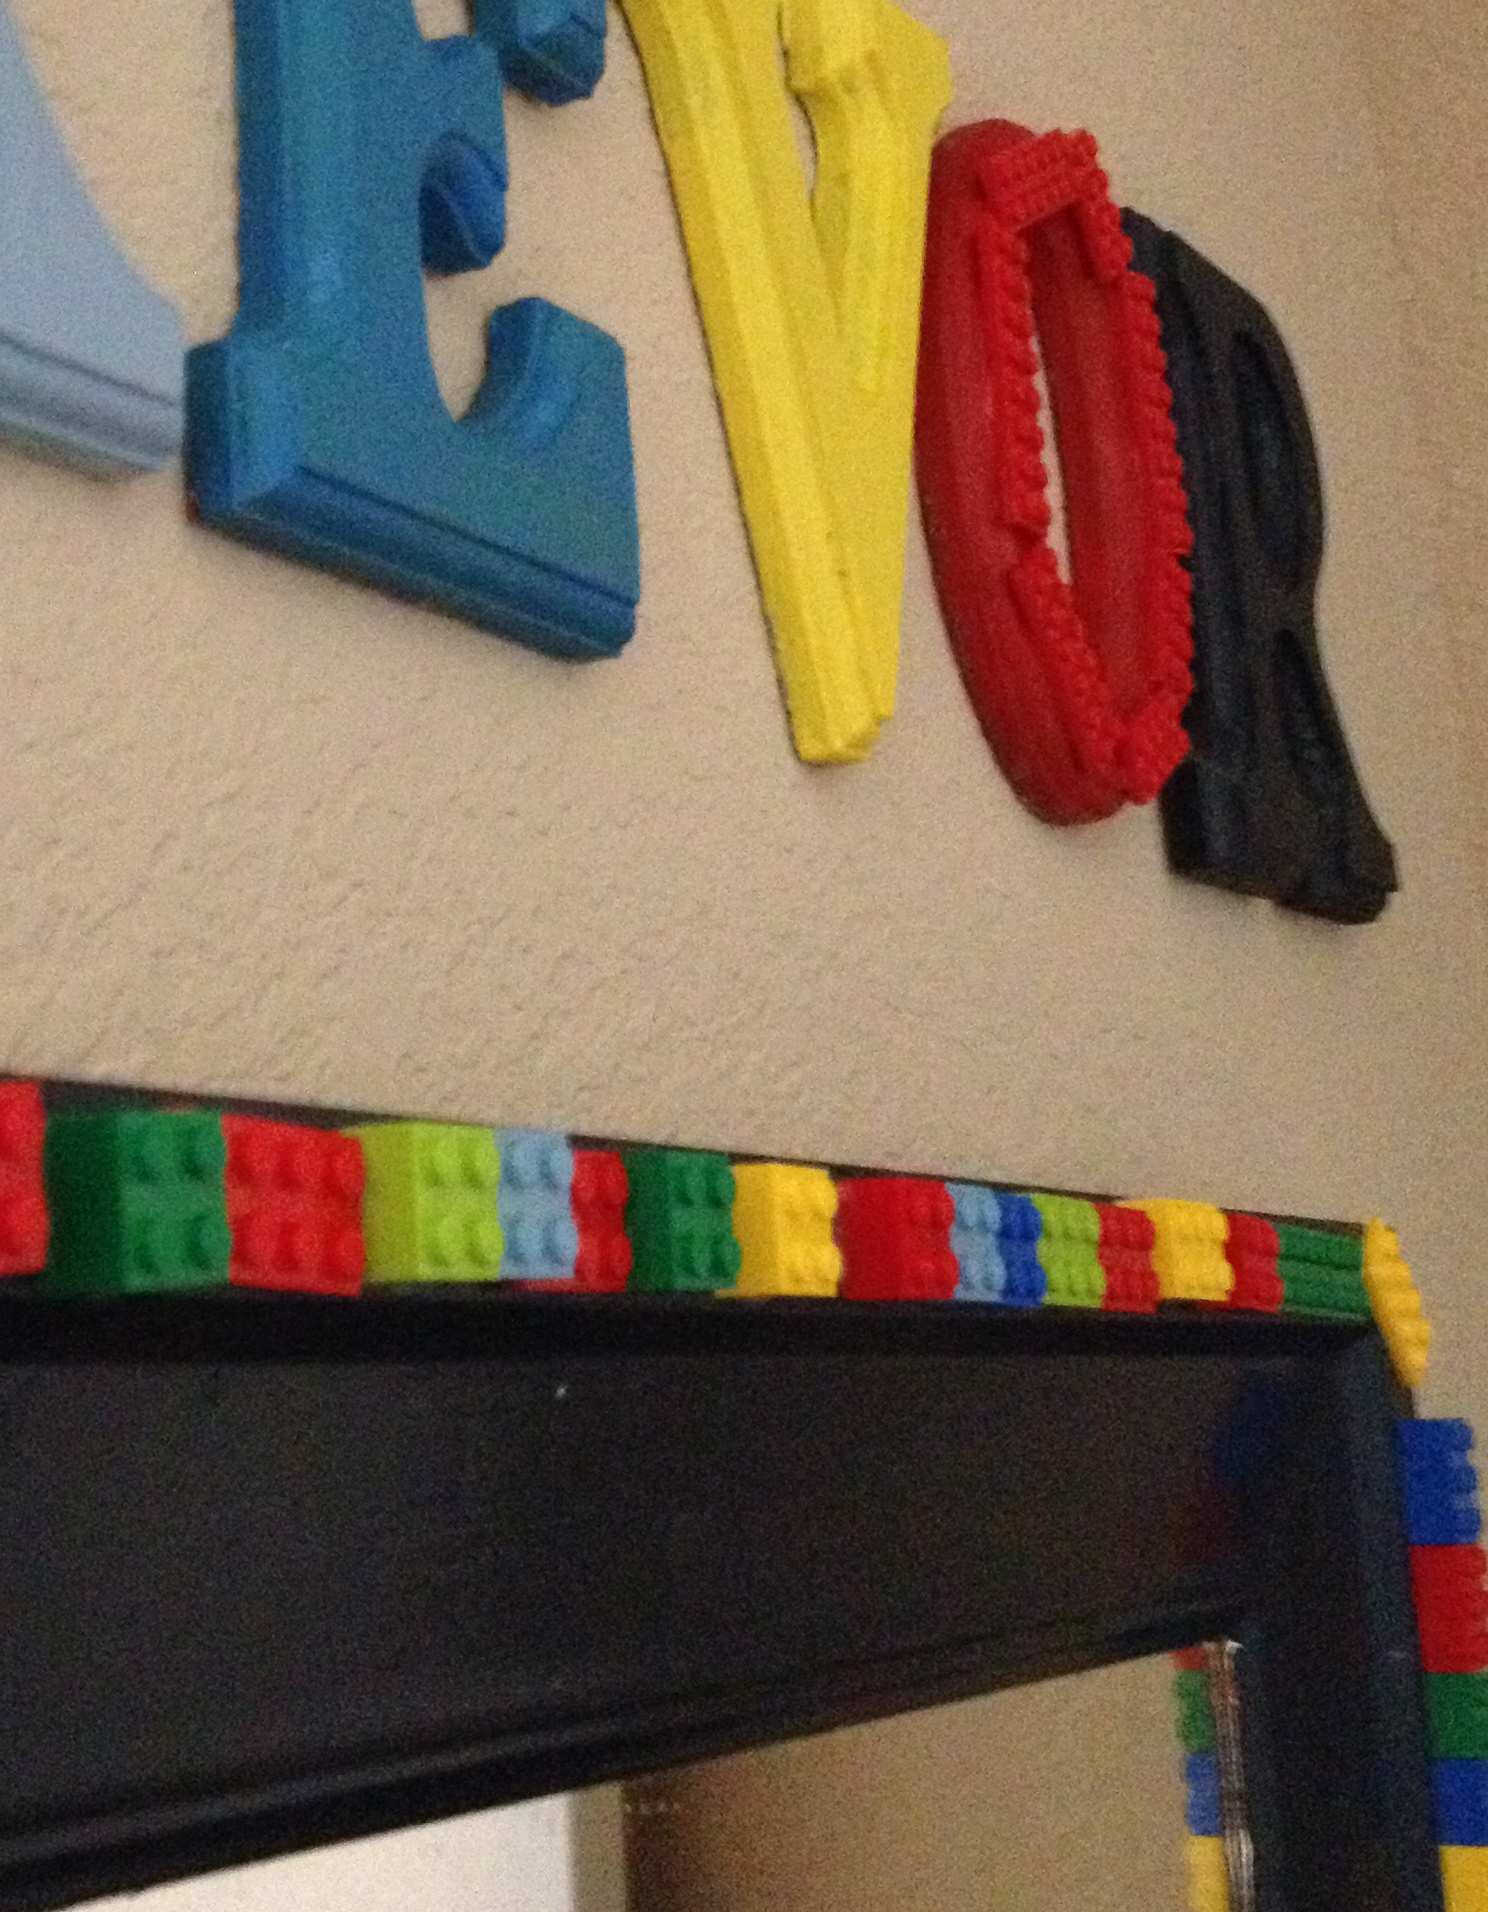 Lego Accessories For Bedroom How To Make A Fabulous Diy Lego Room